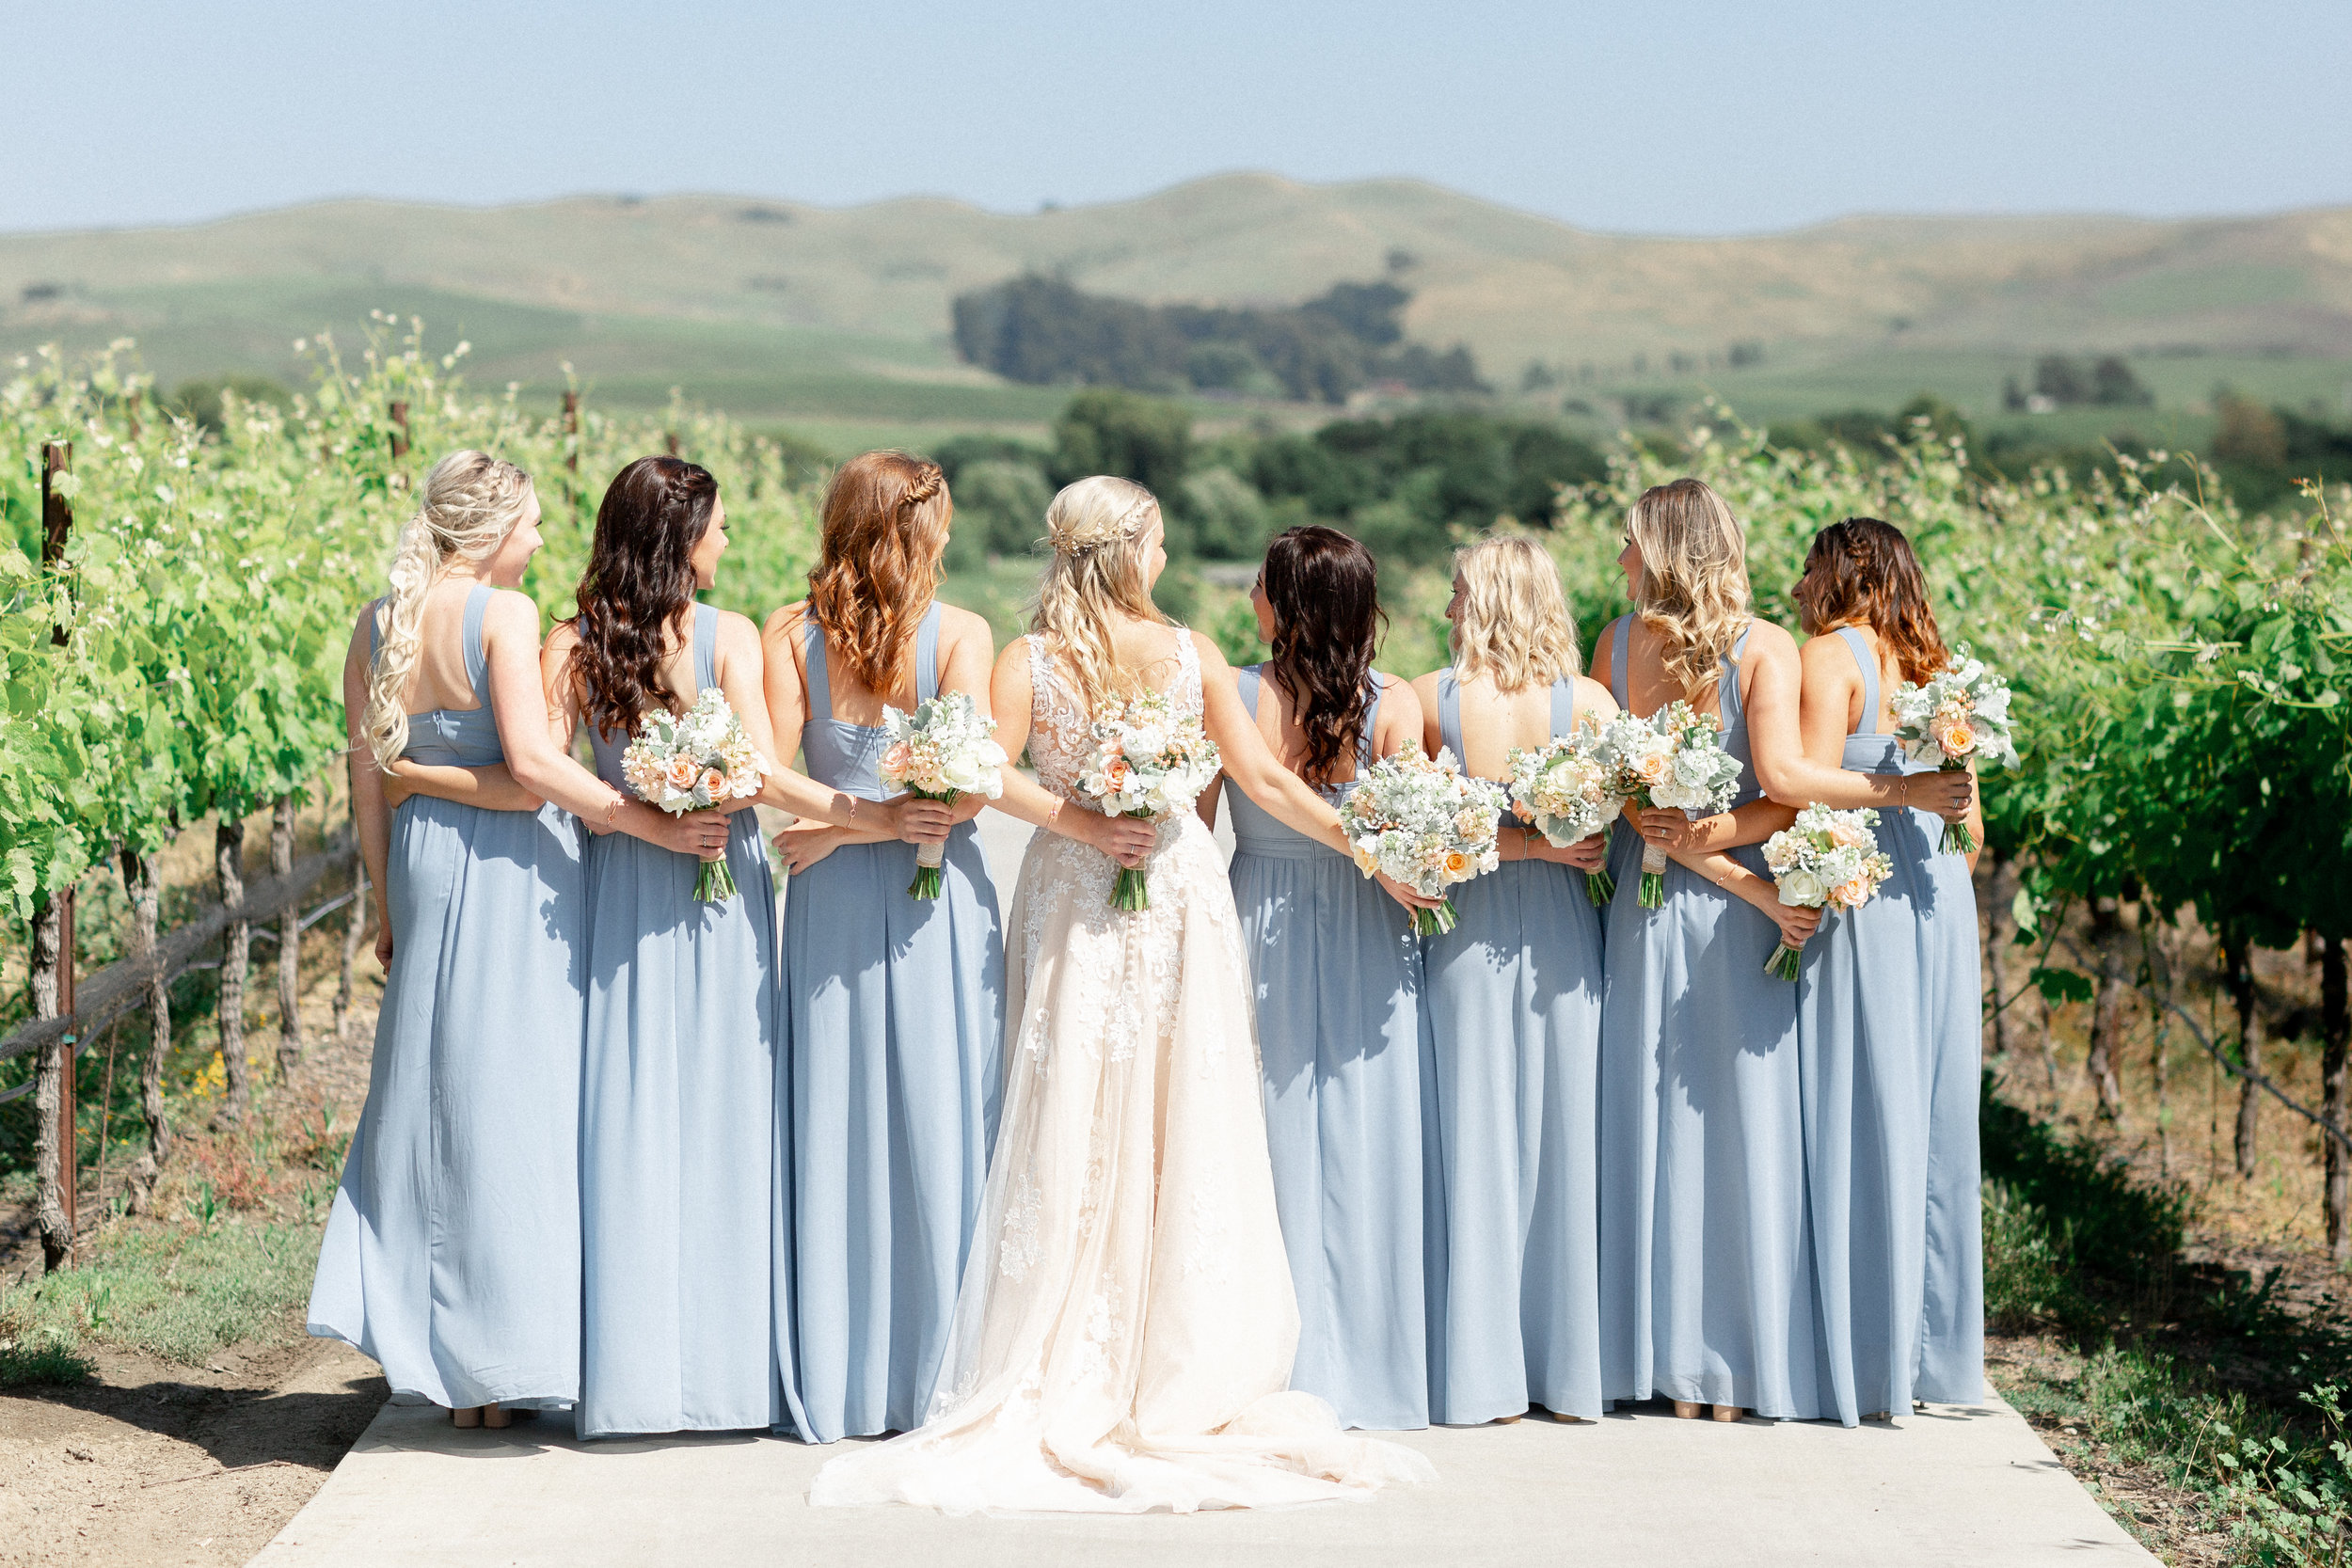 napa-wedding-photographer-captures-bridesmaids.jpg